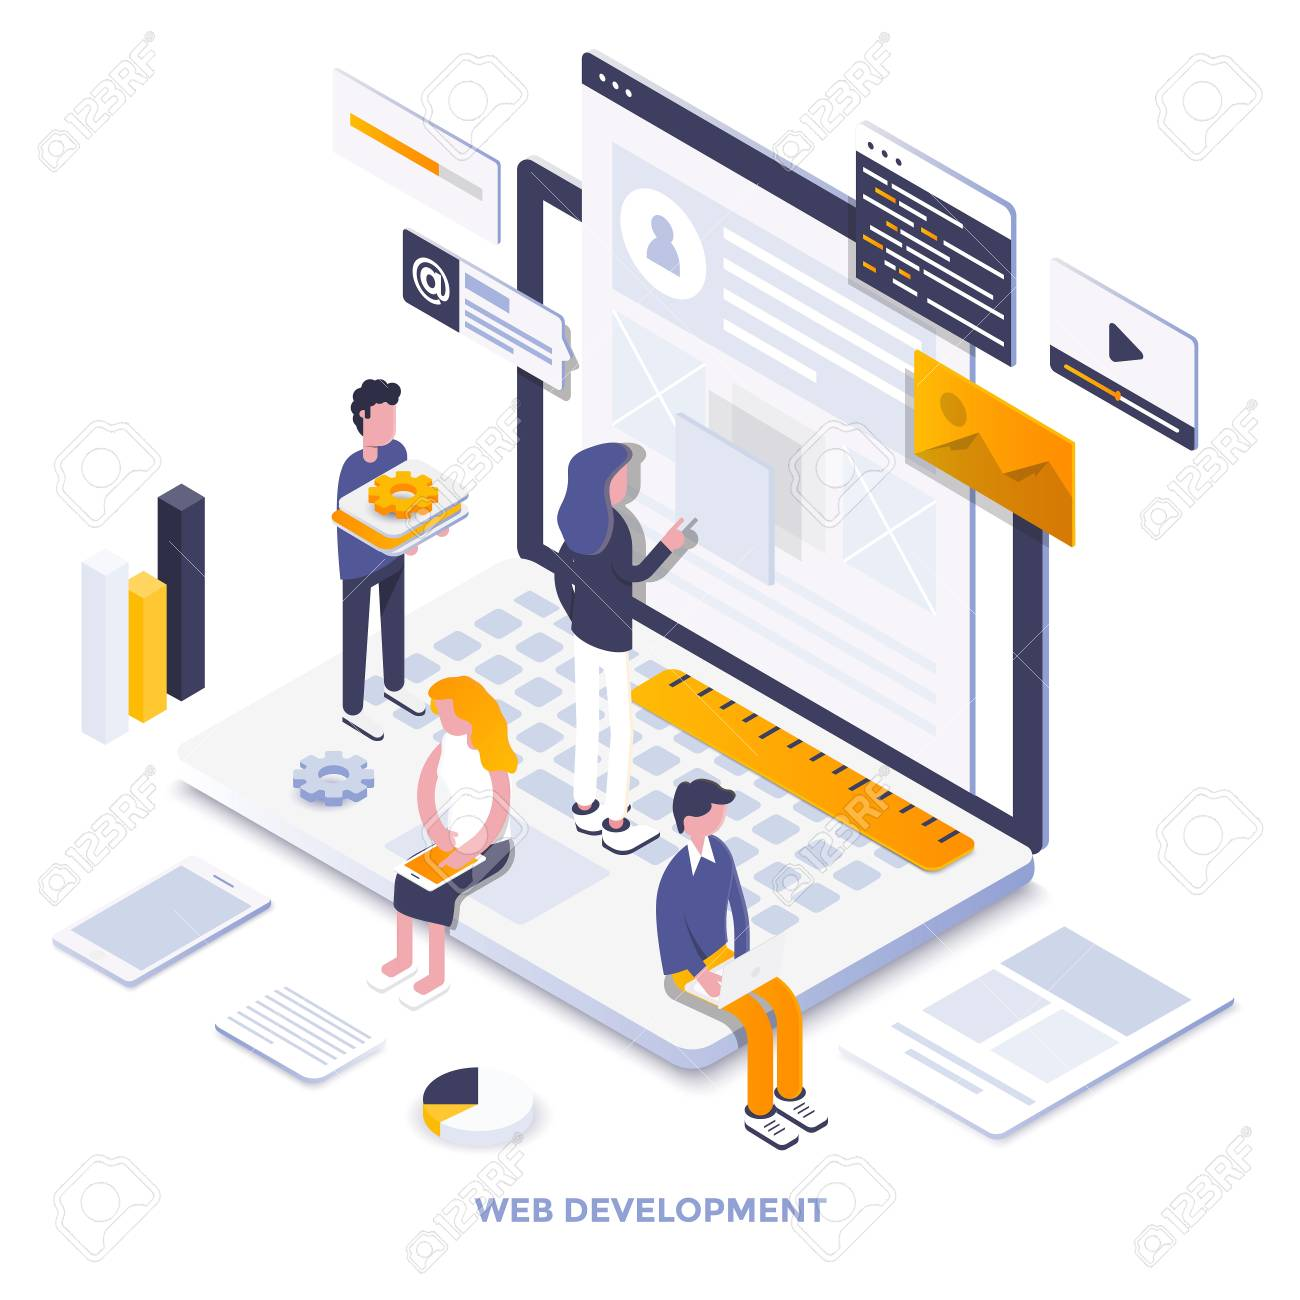 Modern flat design isometric illustration of Web Development. Can be used for website and mobile website or Landing page. Easy to edit and customize. Vector illustration - 104370482